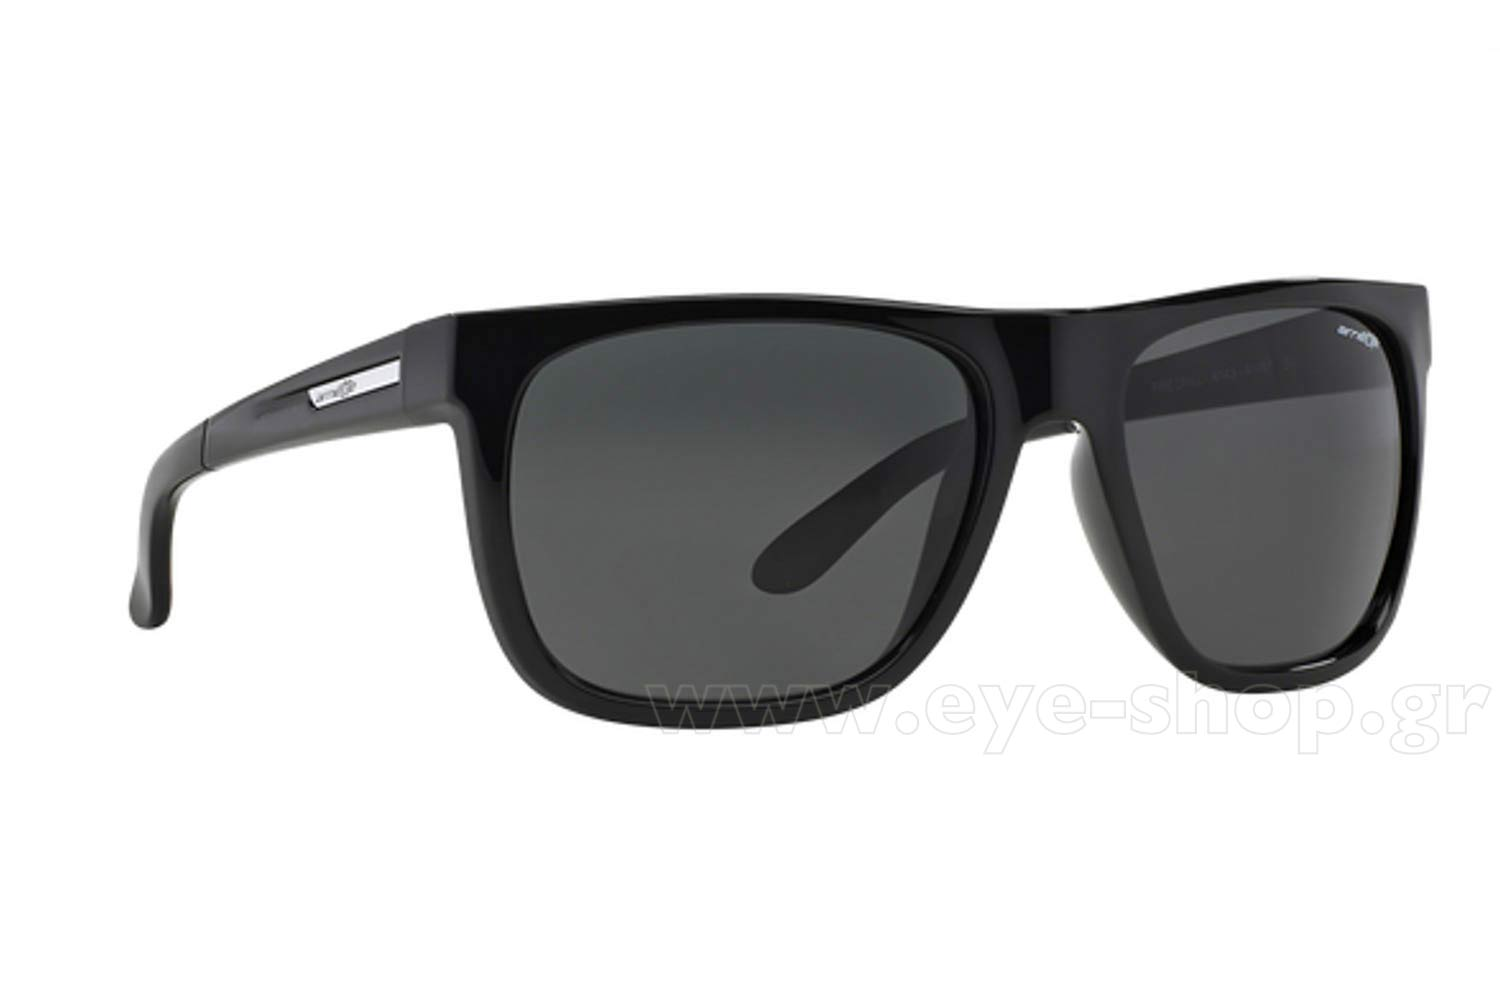 b43546e99a SUNGLASSES Arnette Fire Drill 4143 41 87